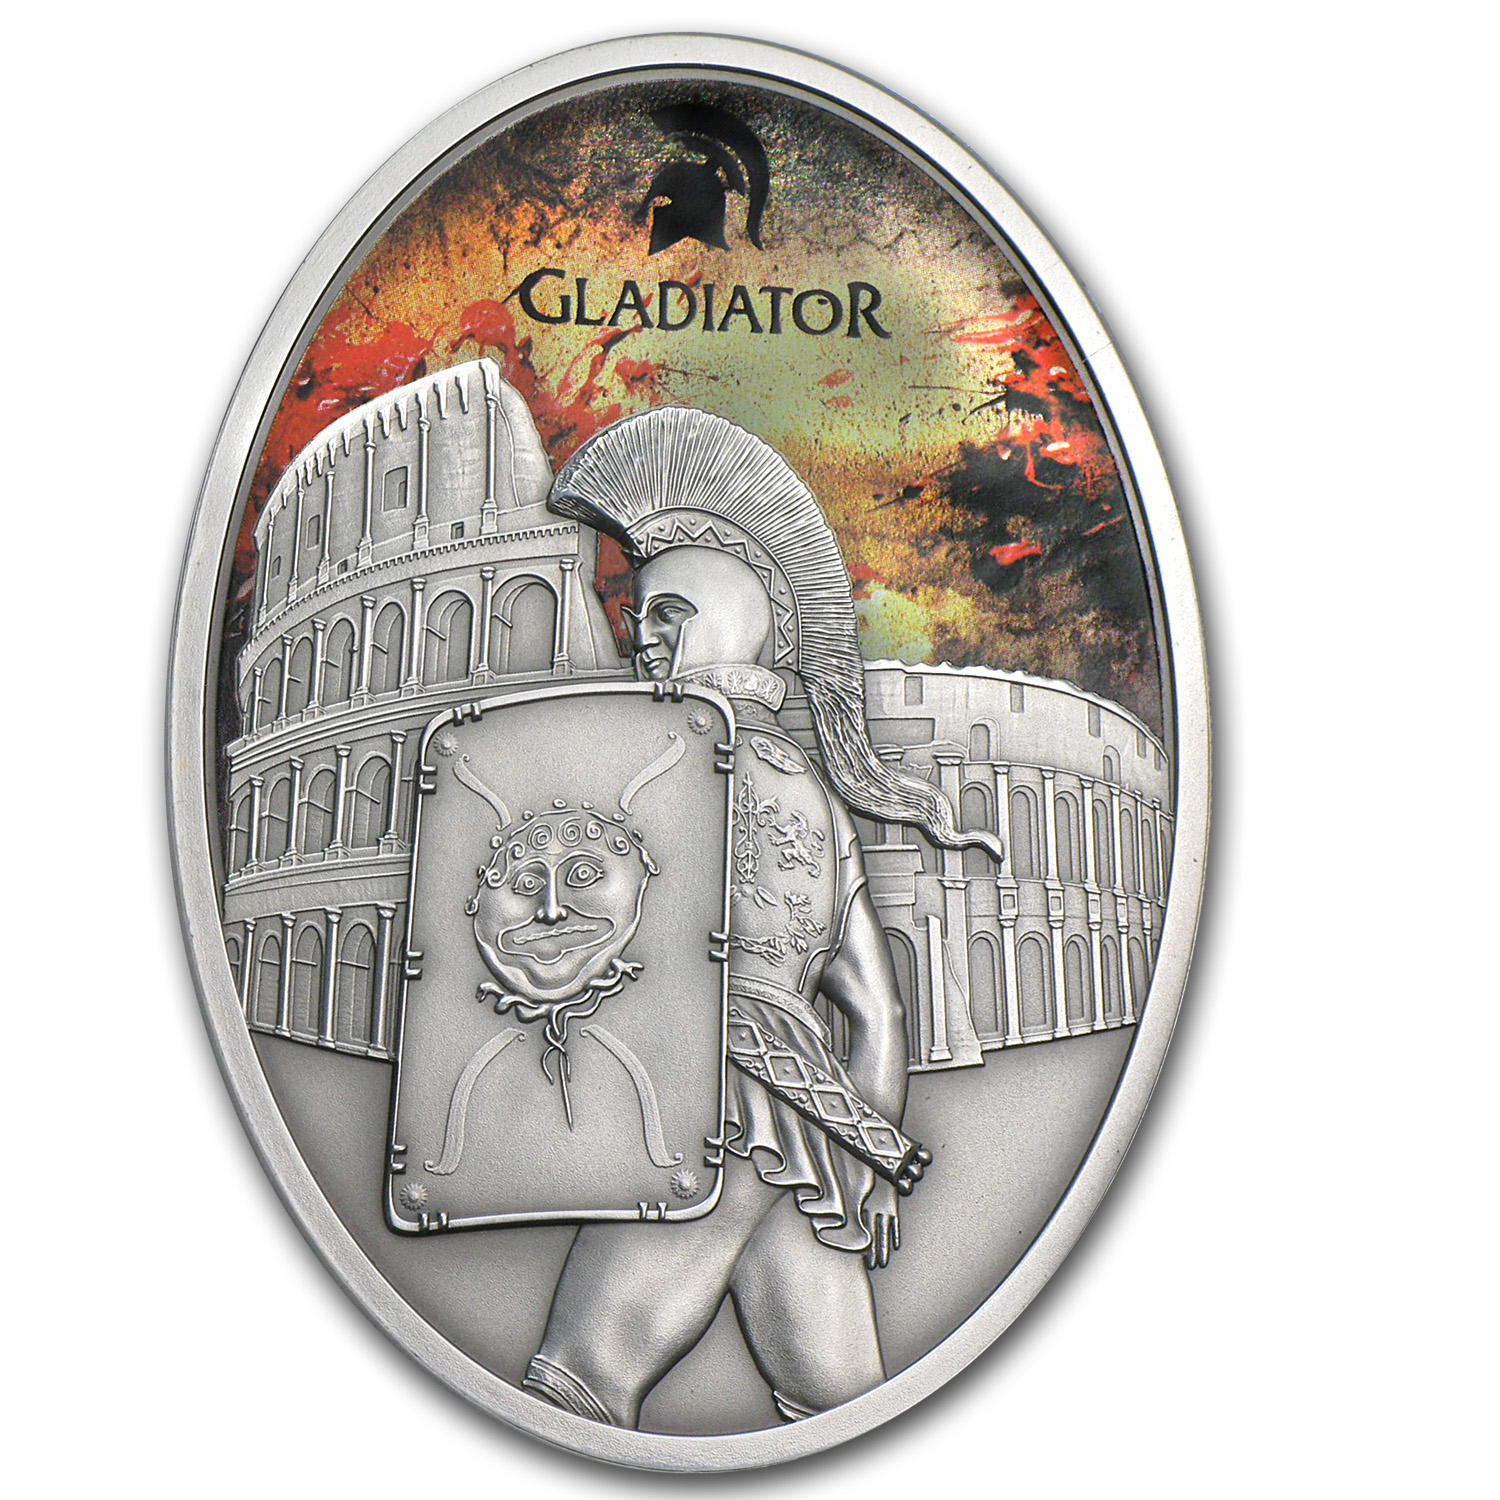 Fiji 2013 1 oz Silver $10 Gladiator - Roman Empire Provocator